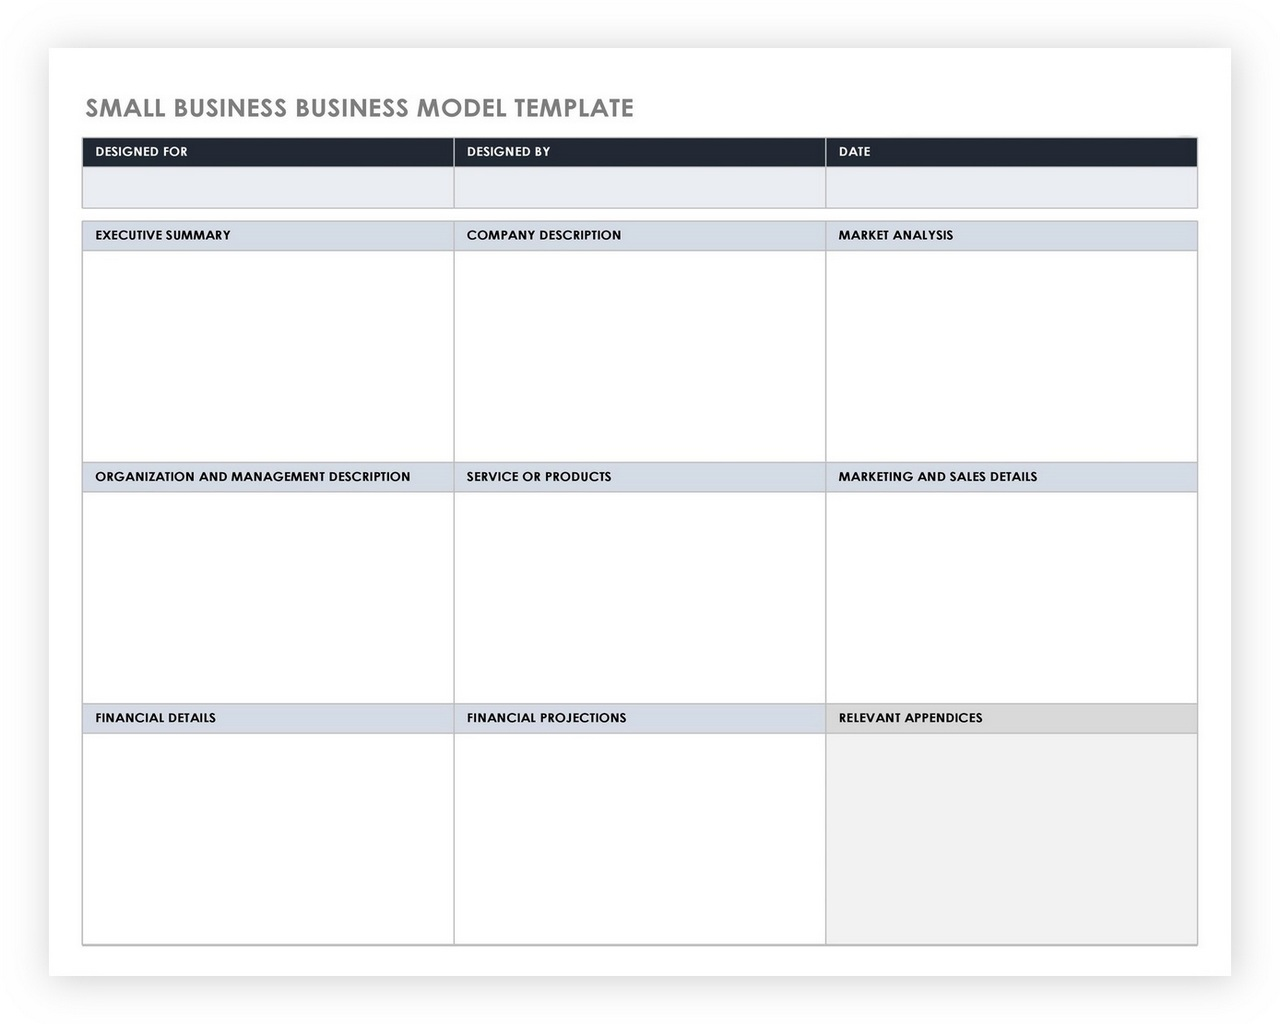 Business Model Canvas Template 09 1